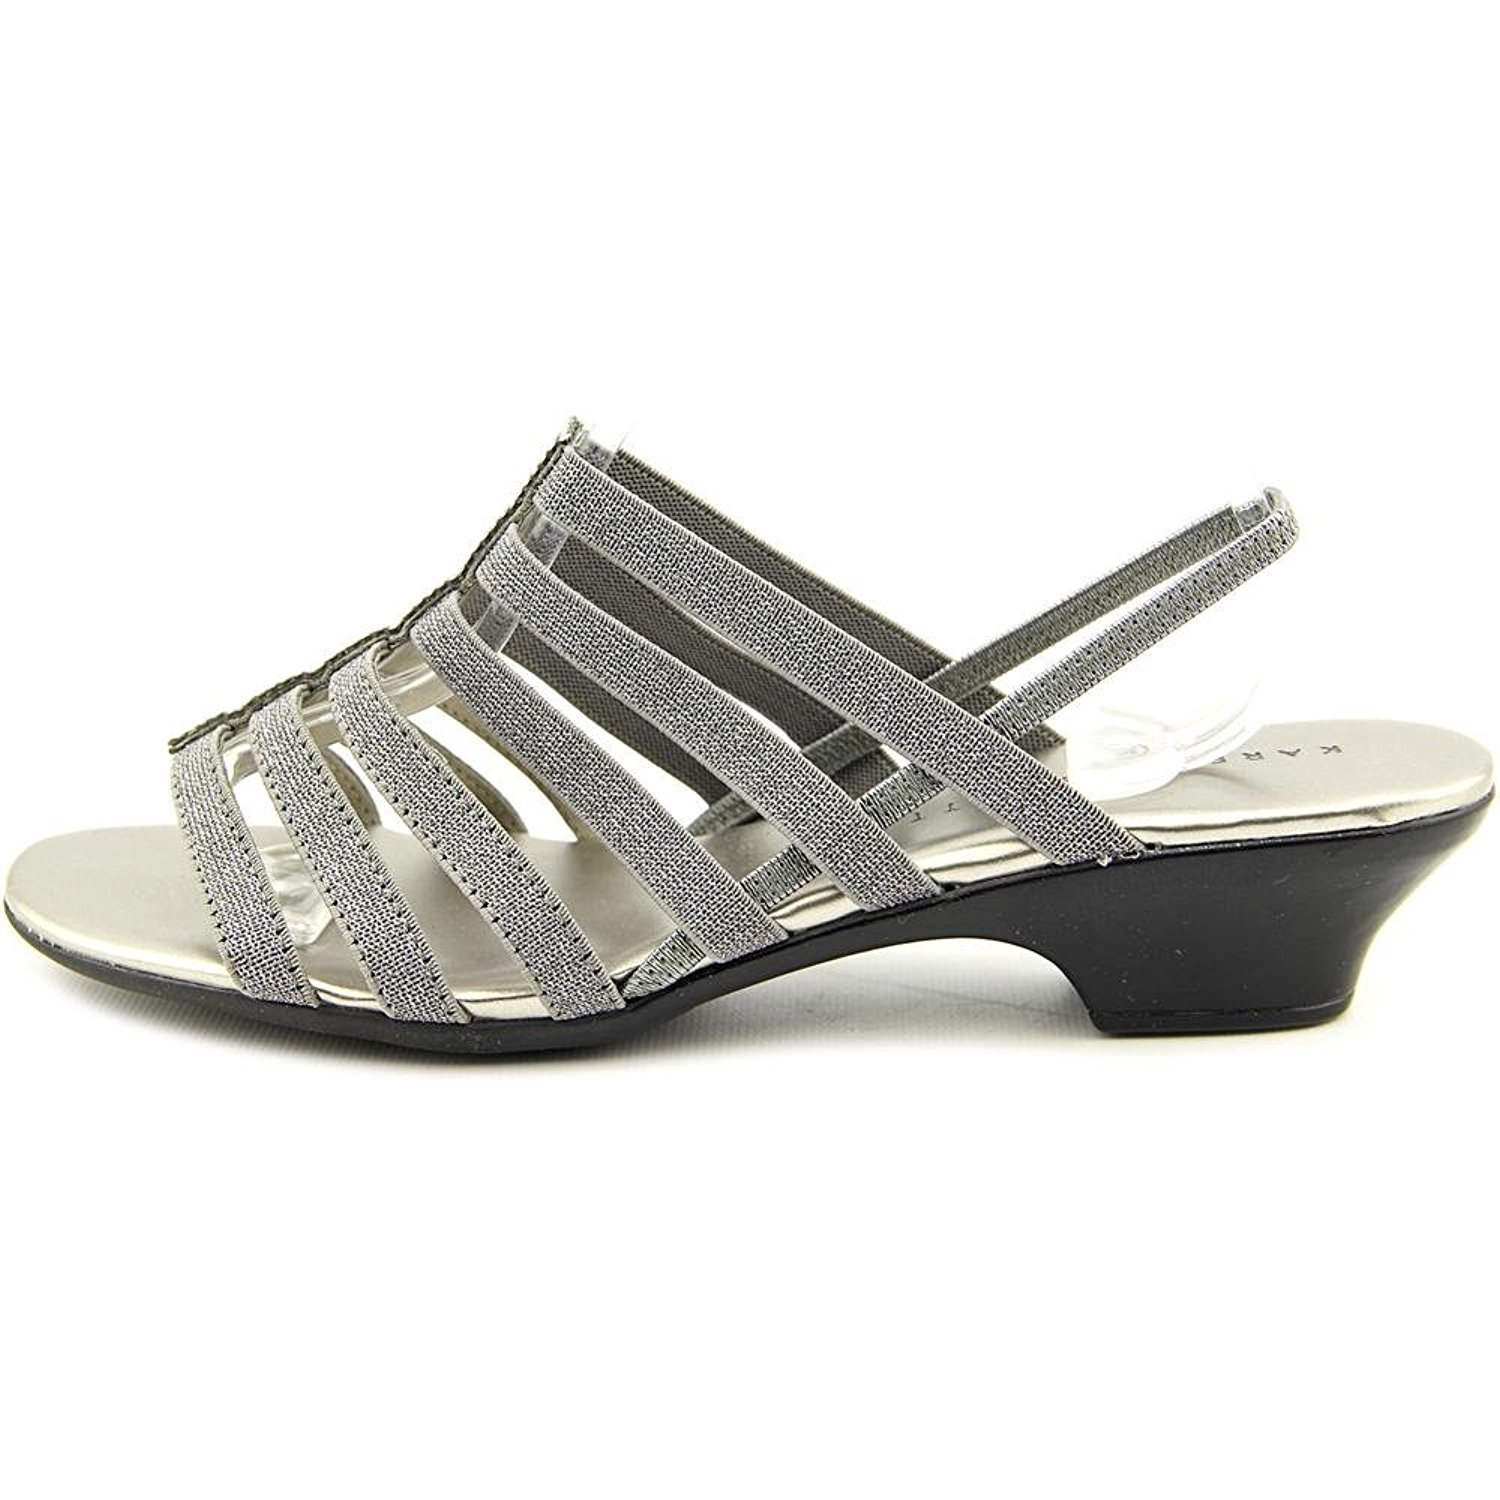 Karen 60 Scott Donna ESTEVEE Open Toe Casual Pewter Size 60 Karen 760628